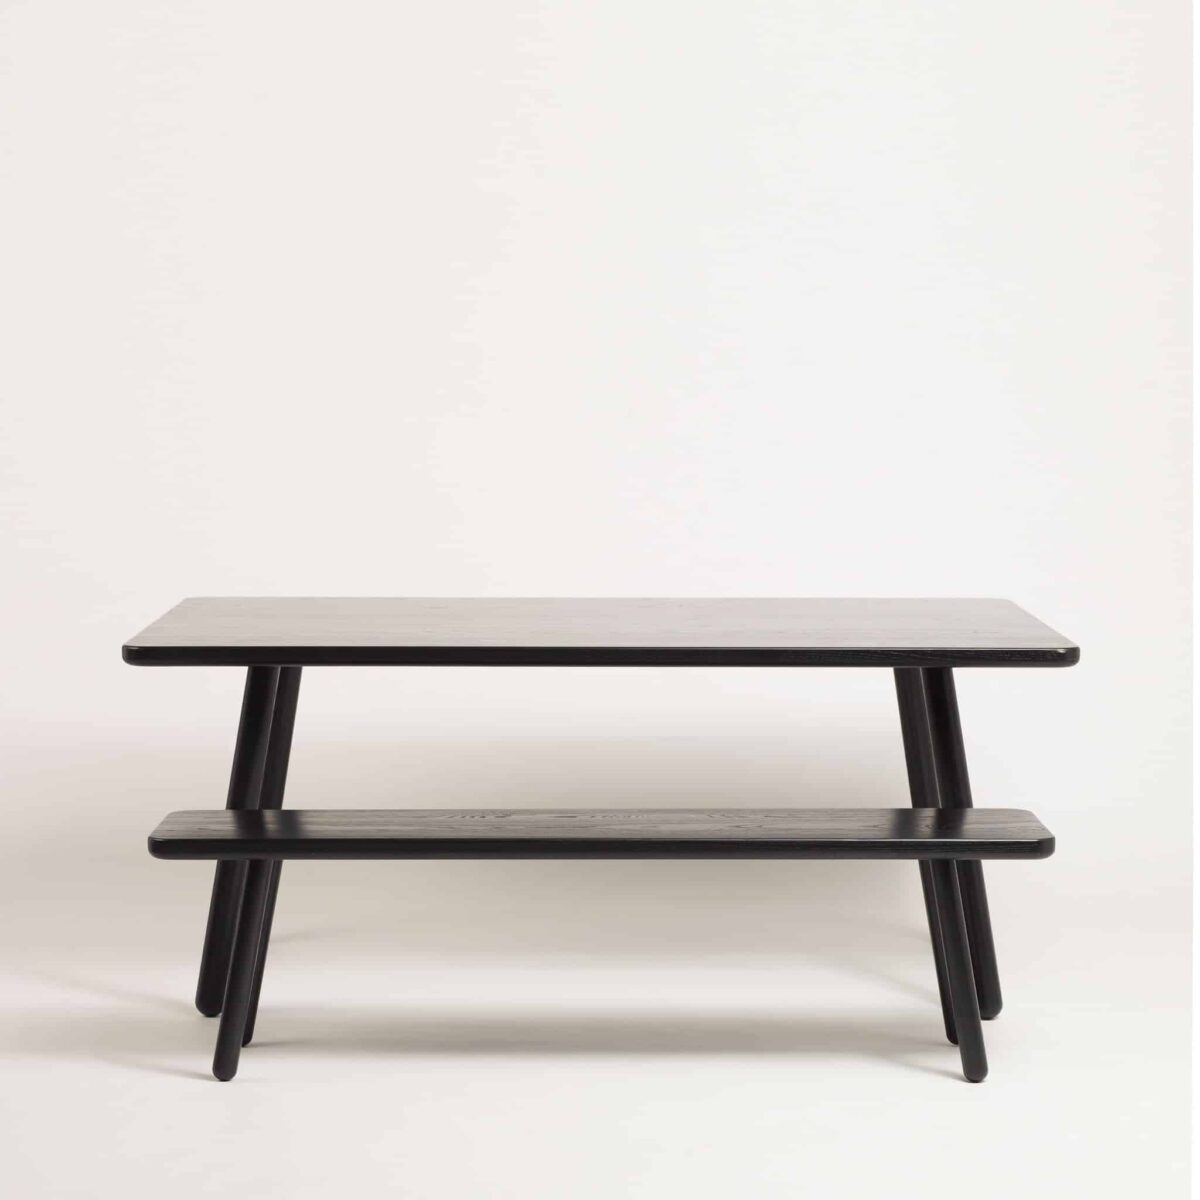 series-one-table-black-ash-another-country-002